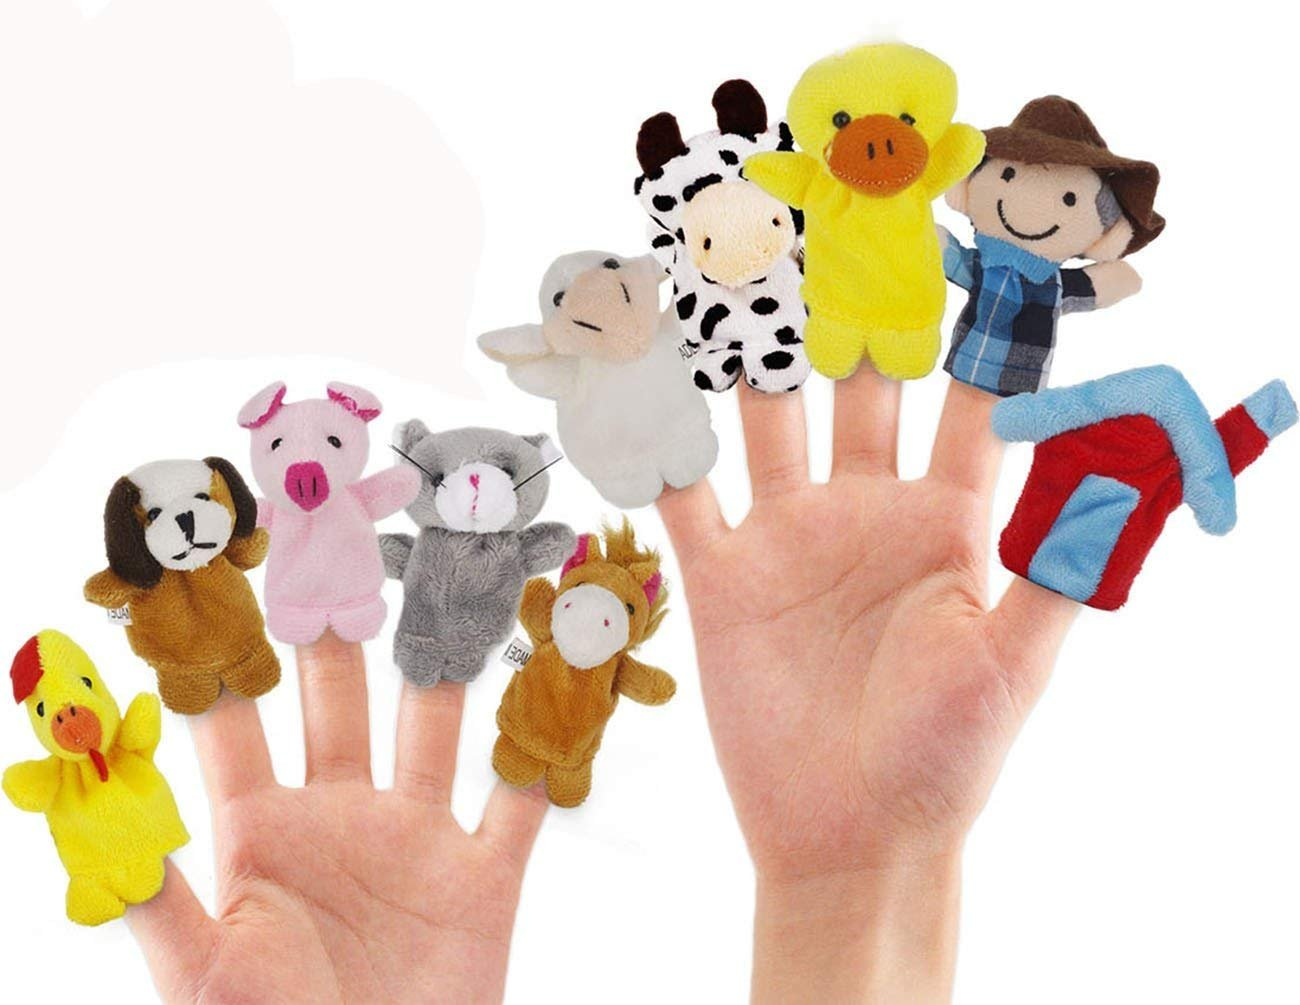 JZH Pack of 10 Different Cartoon Animal Soft Plush Hand Puppets Finger Puppets Soft Plus, Baby Soft Velvet Dolls Props Toys Storytelling Toys. (Farm Animals)